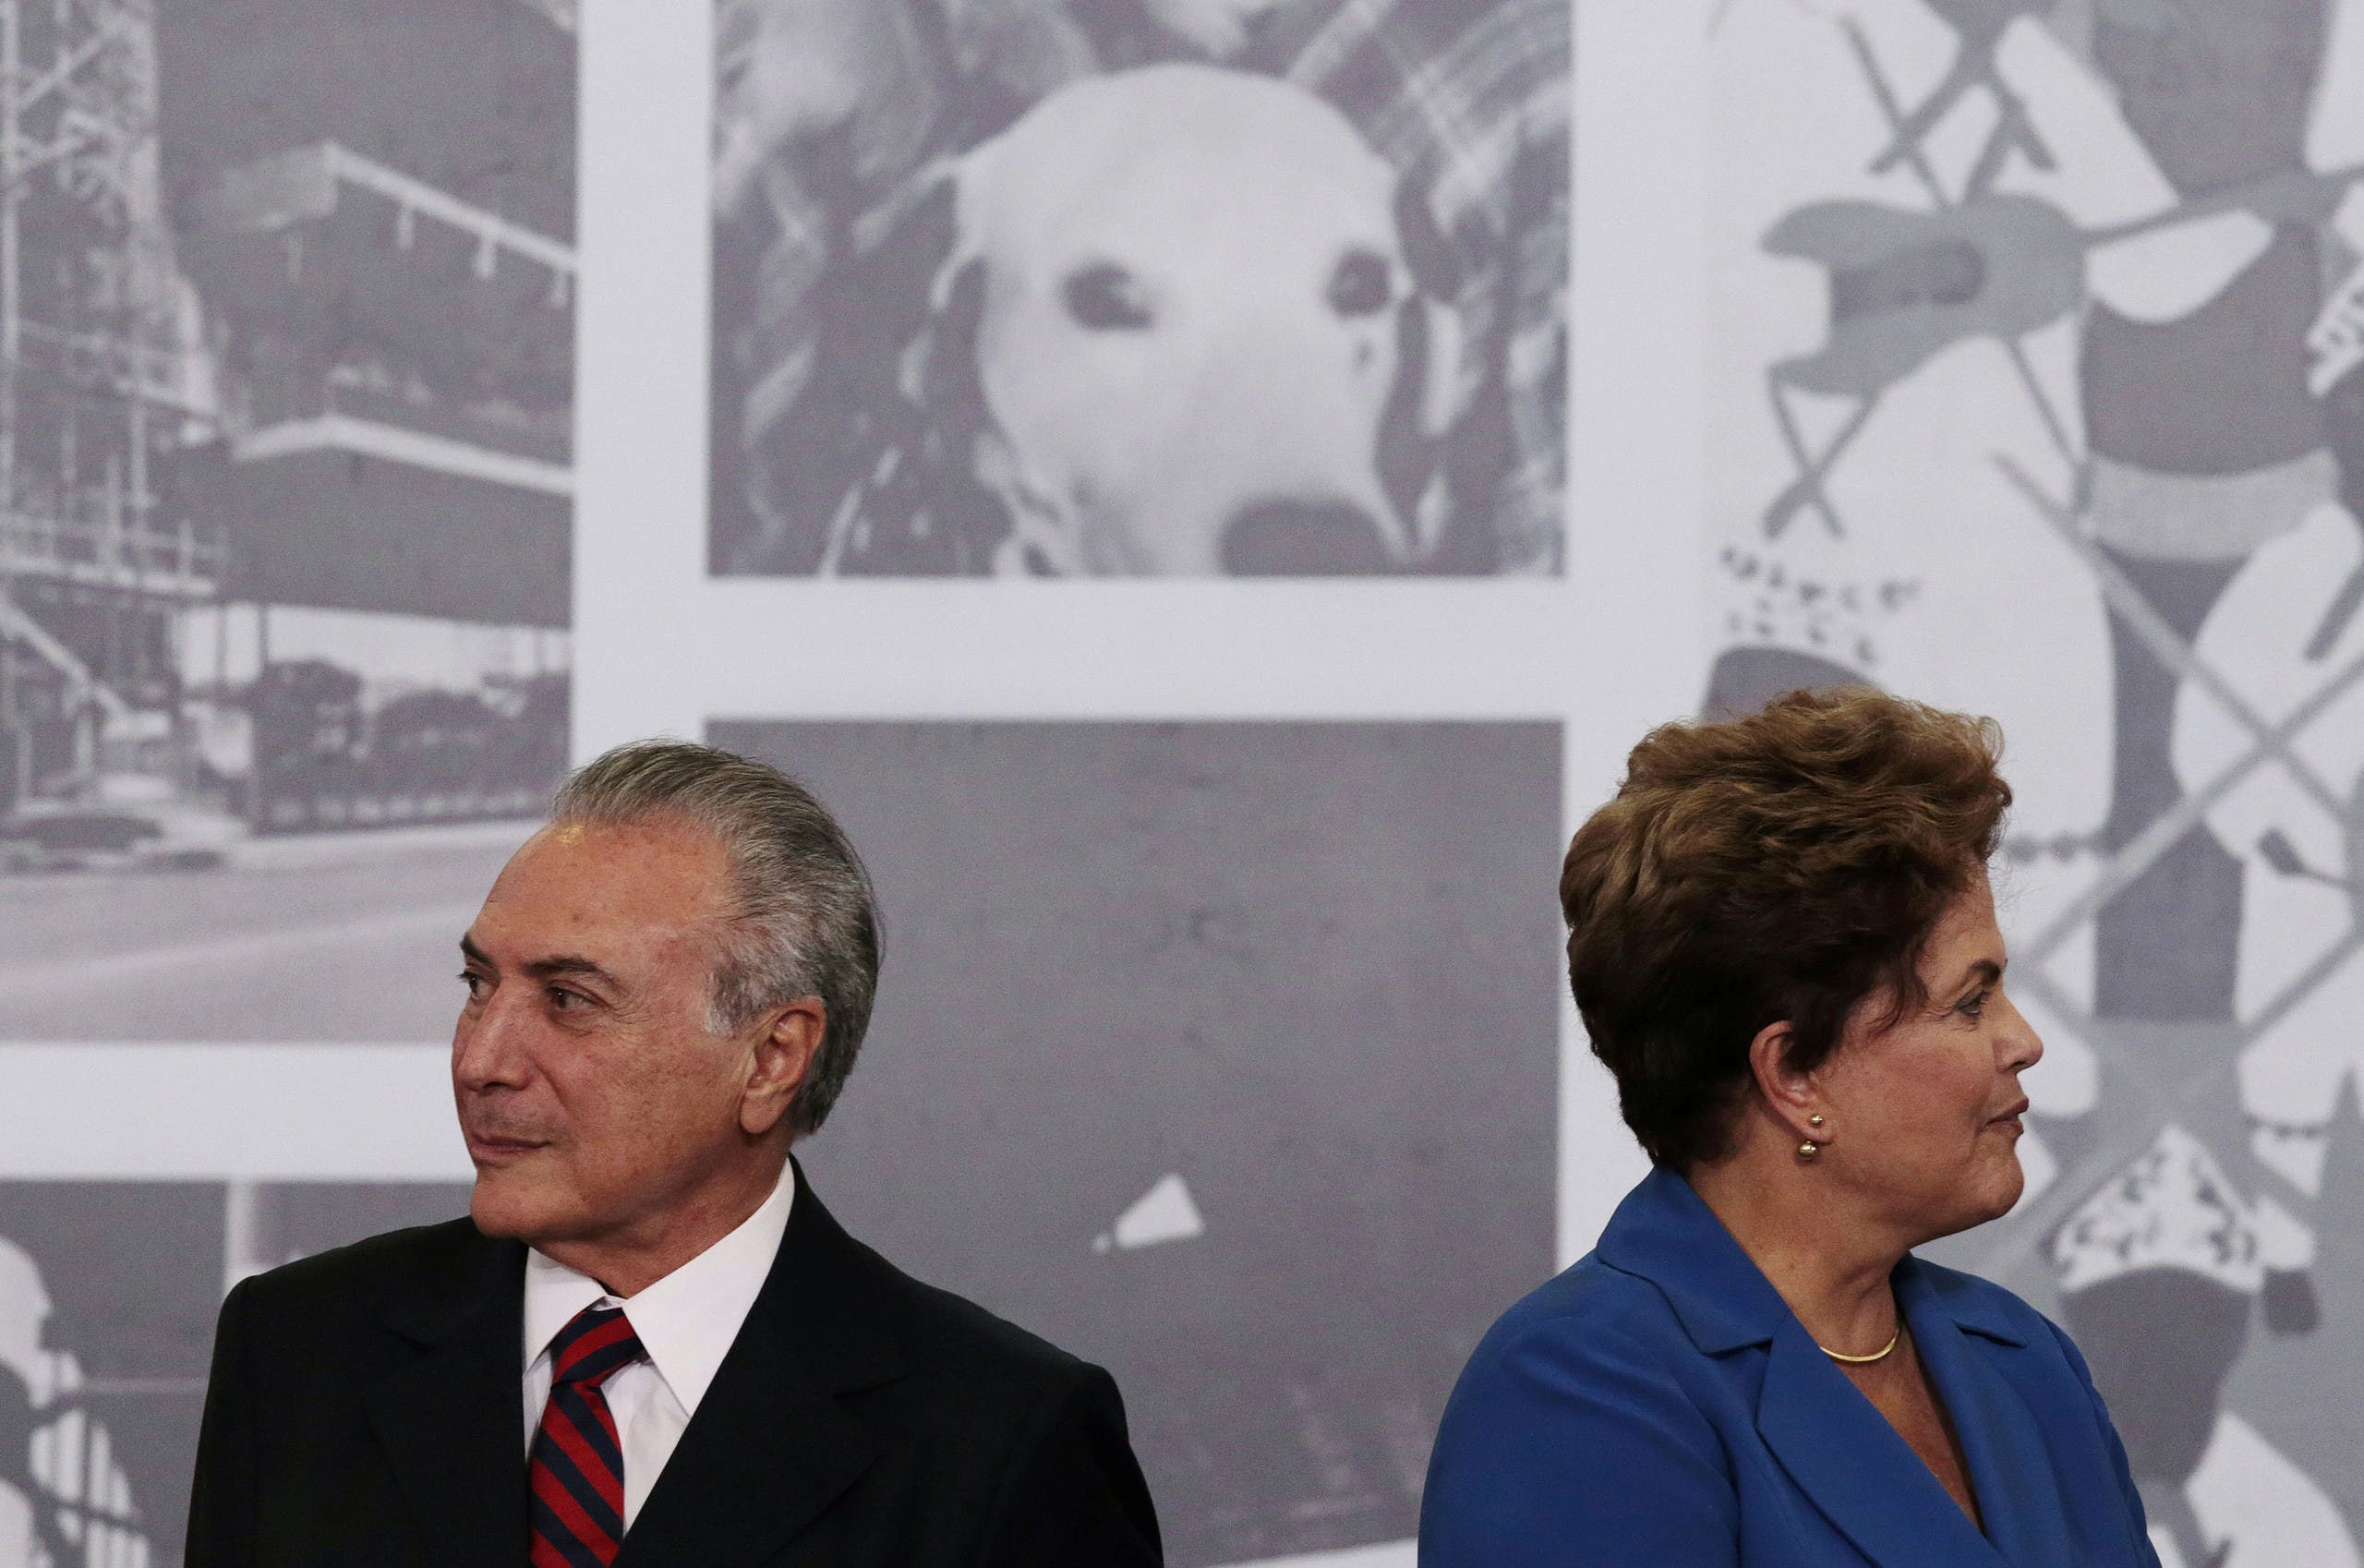 Roussef's successor, Michel Temer, has run Brazil since her suspension in May. (Reuters)